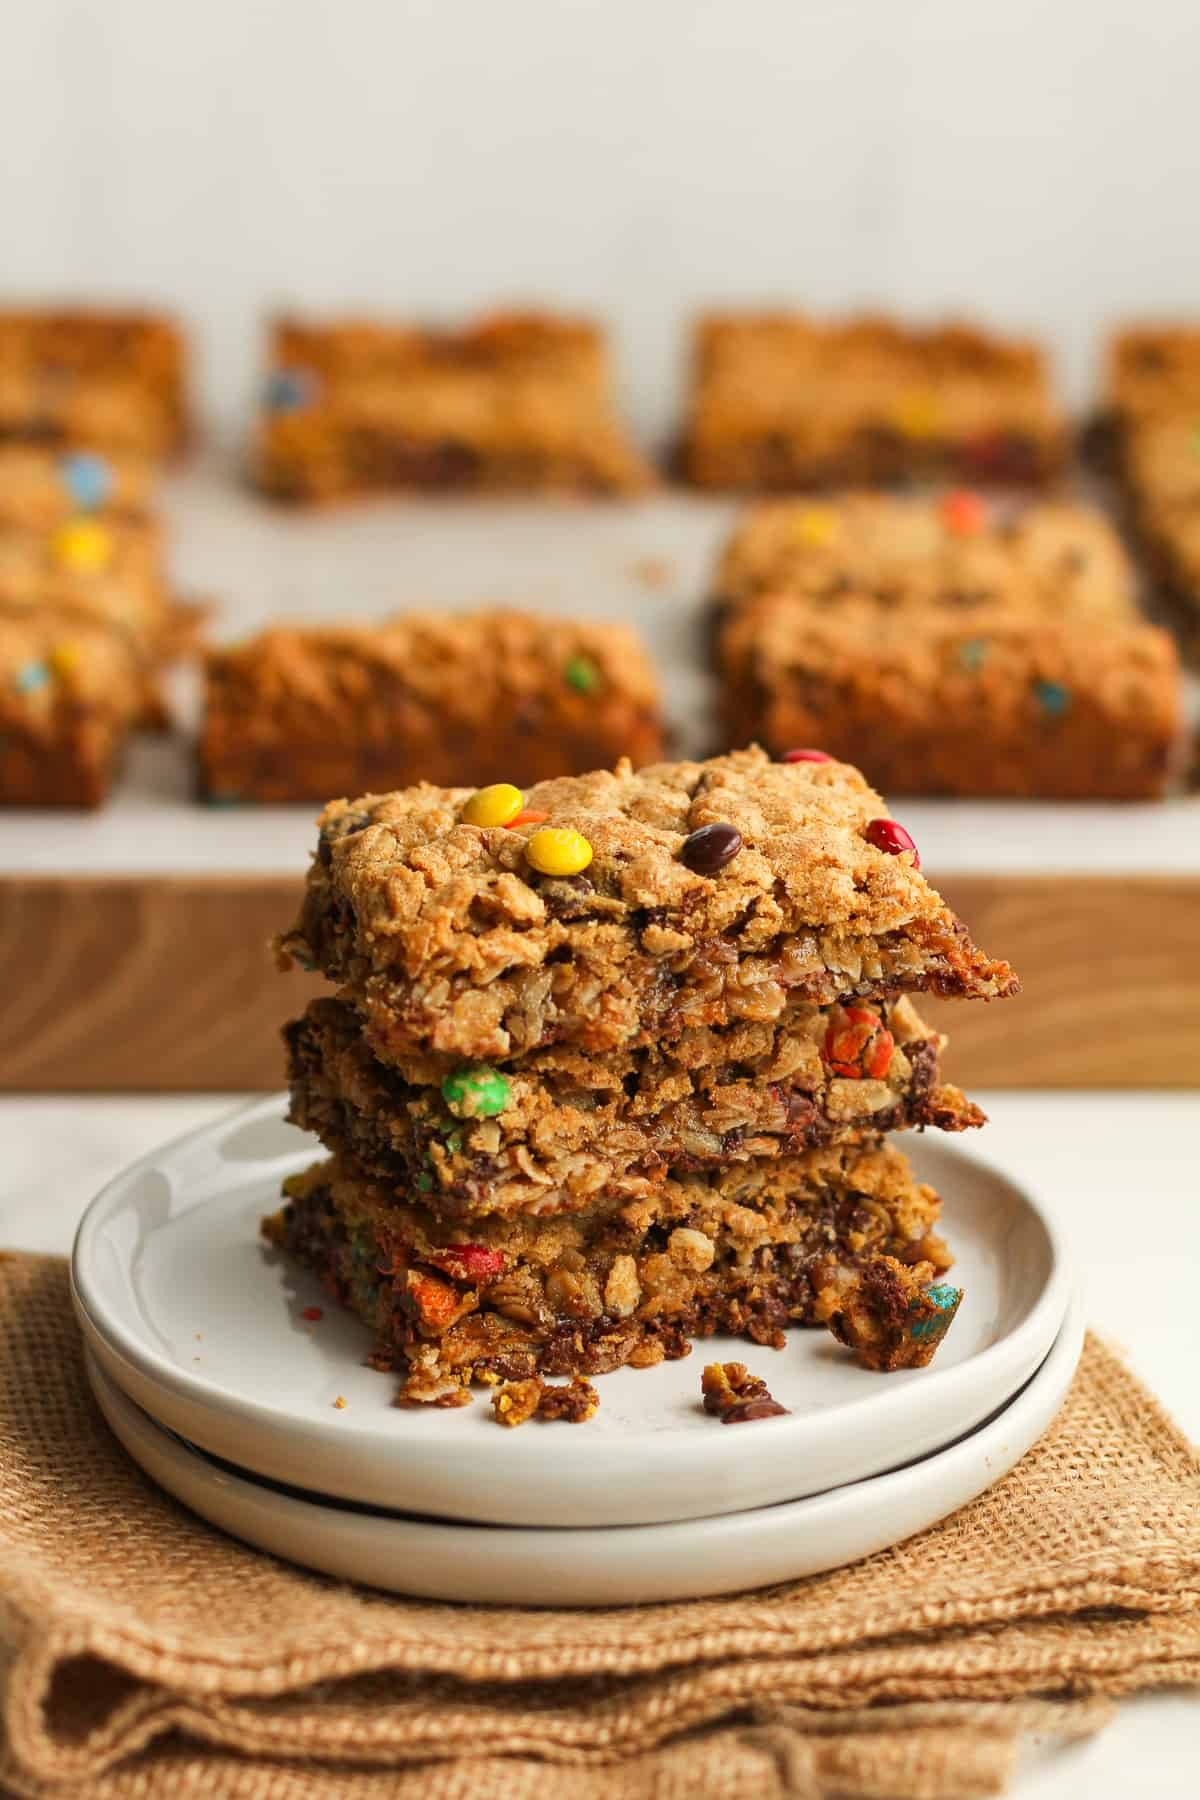 A stack of three monster cookie bars on a plate.